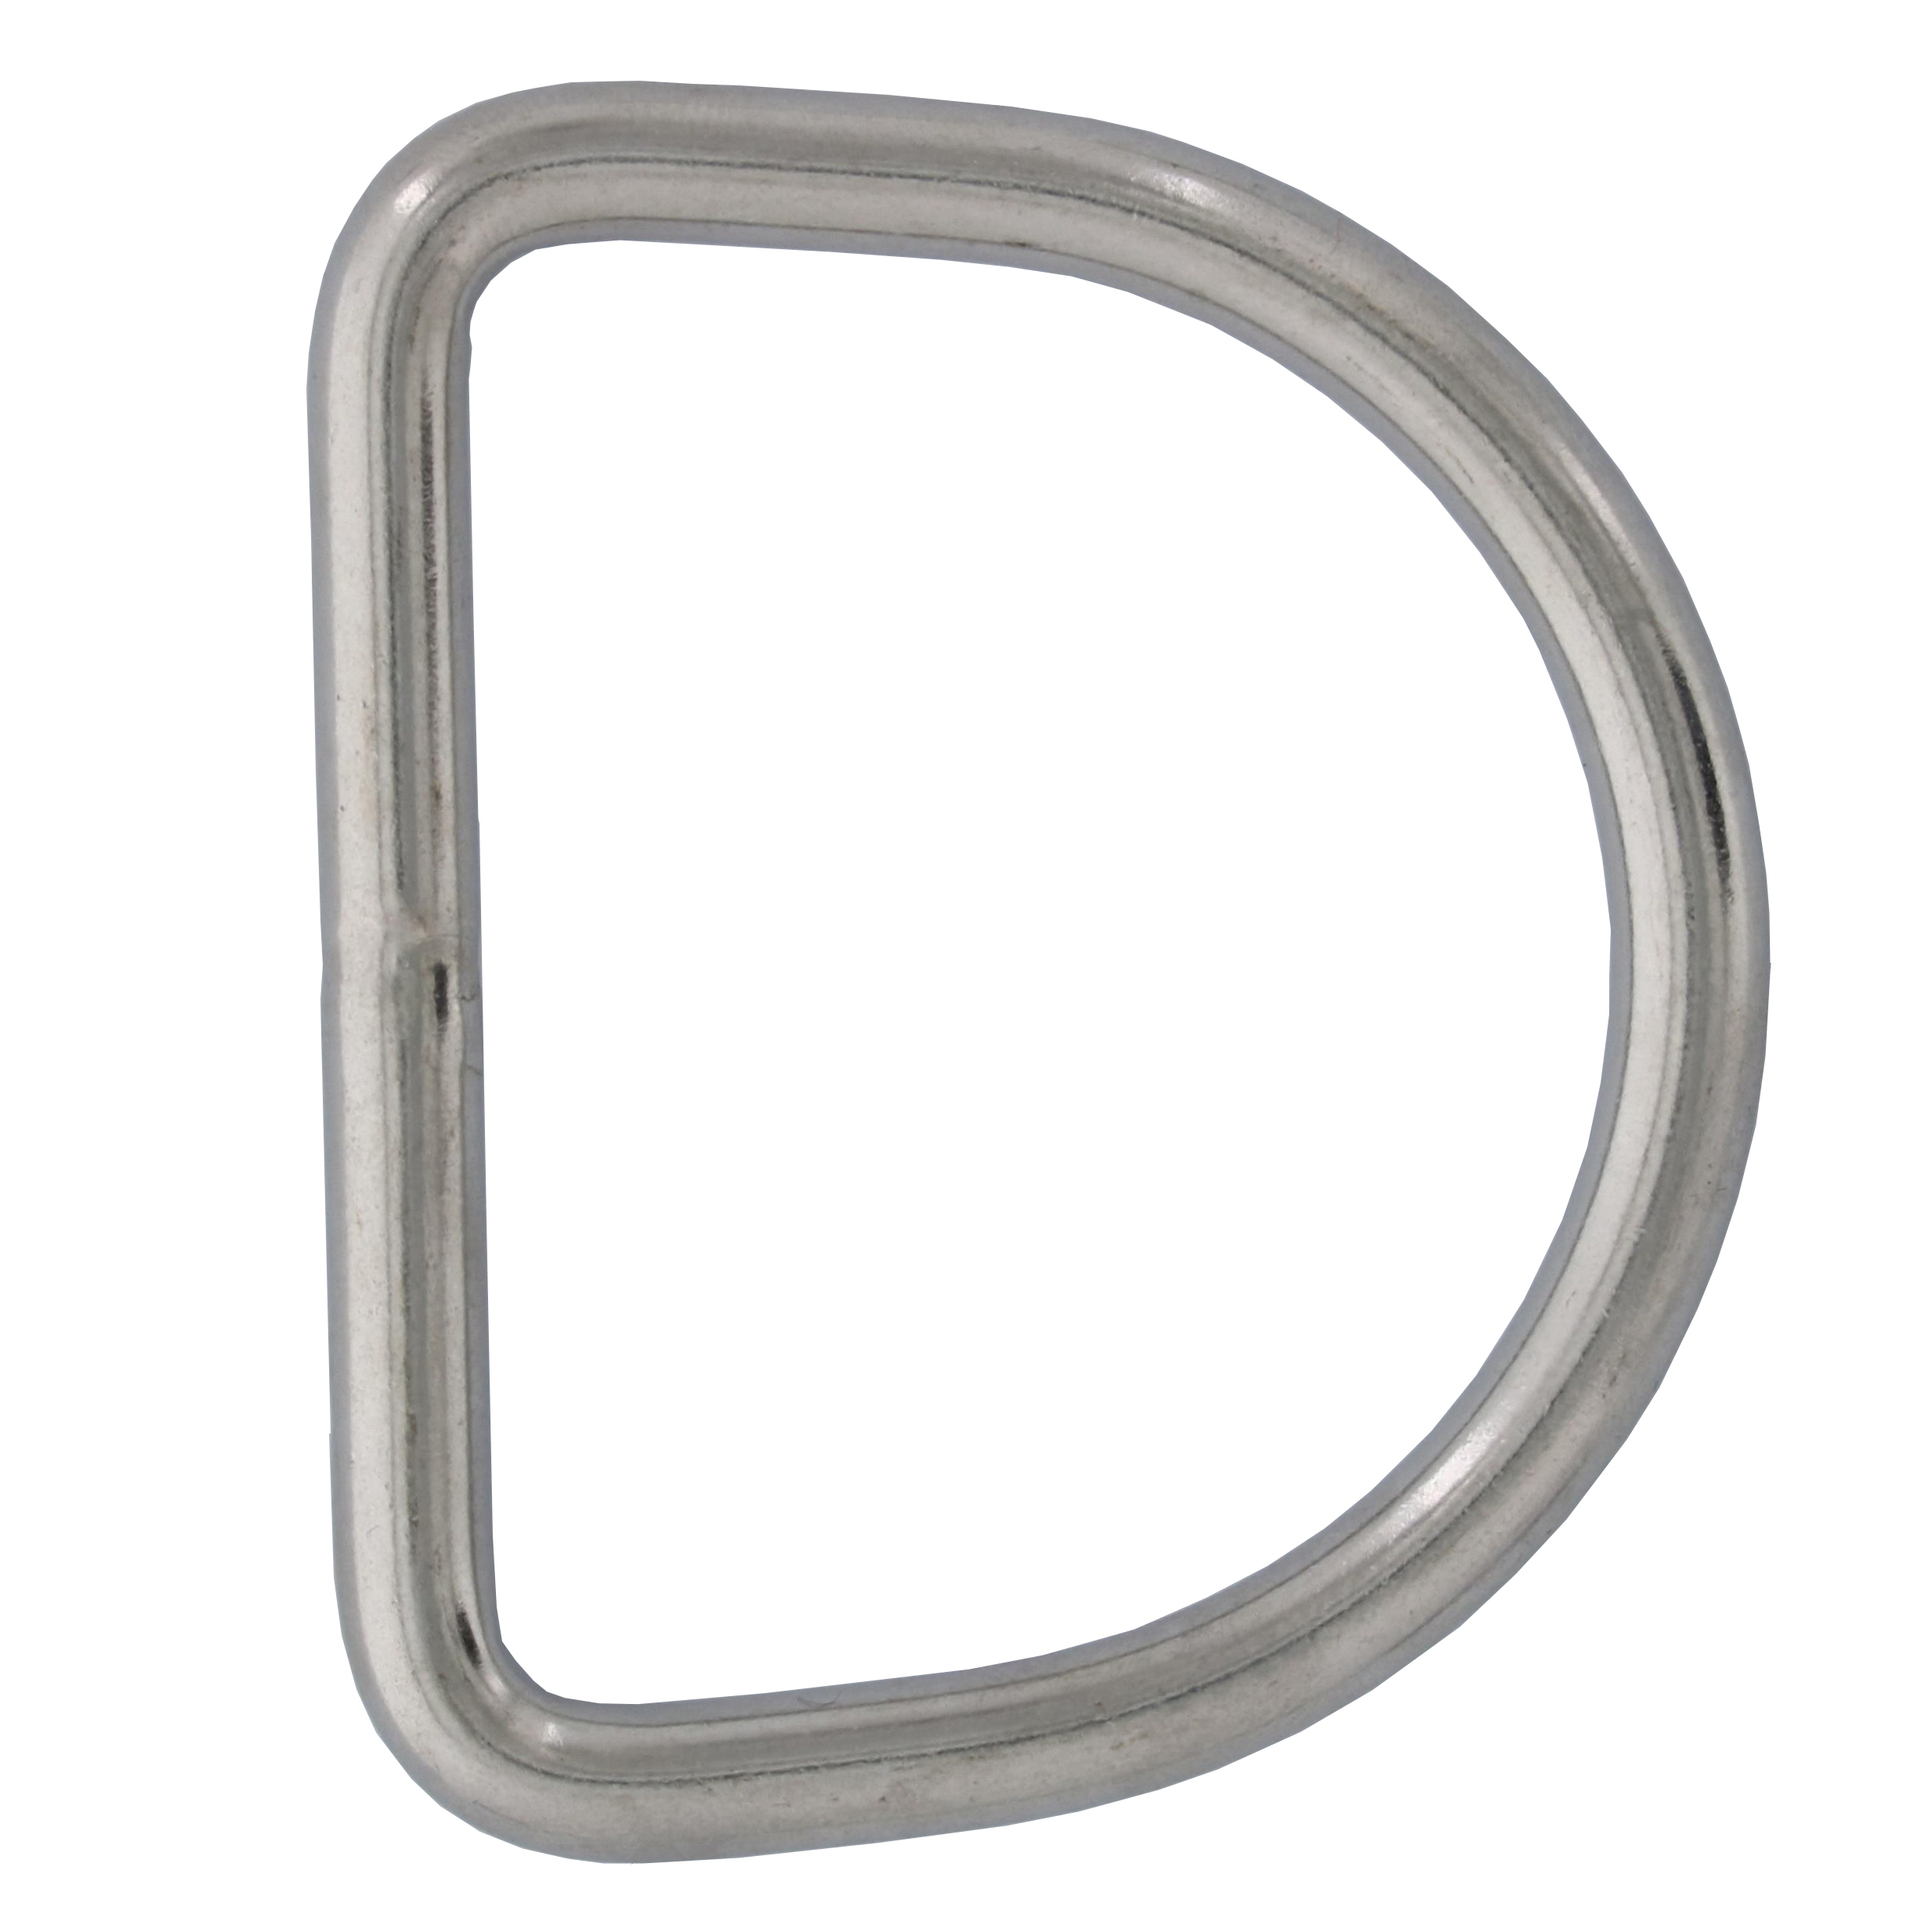 "1/4"" x 2-3/16"" Stainless Steel D Ring Image 1"